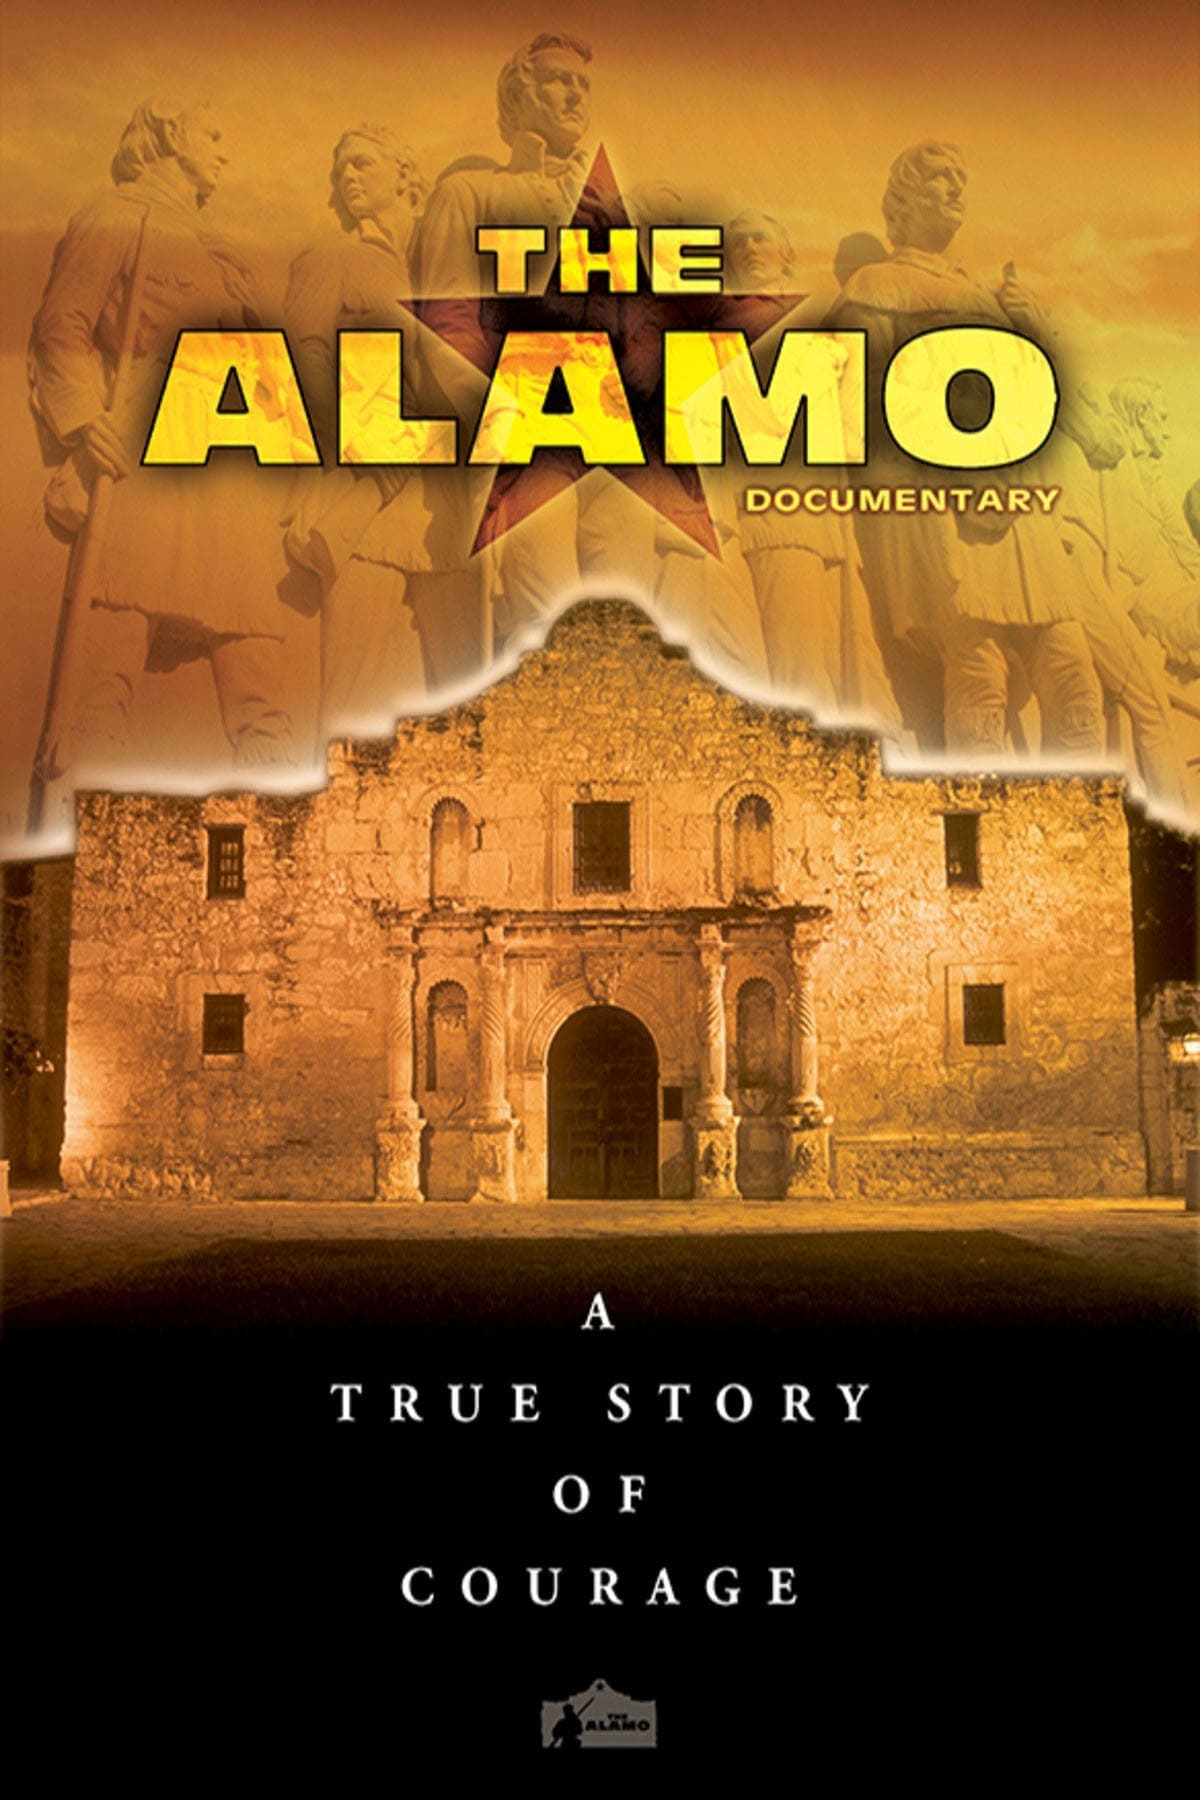 The Alamo Documentary: A True Story of Courage on FREECABLE TV